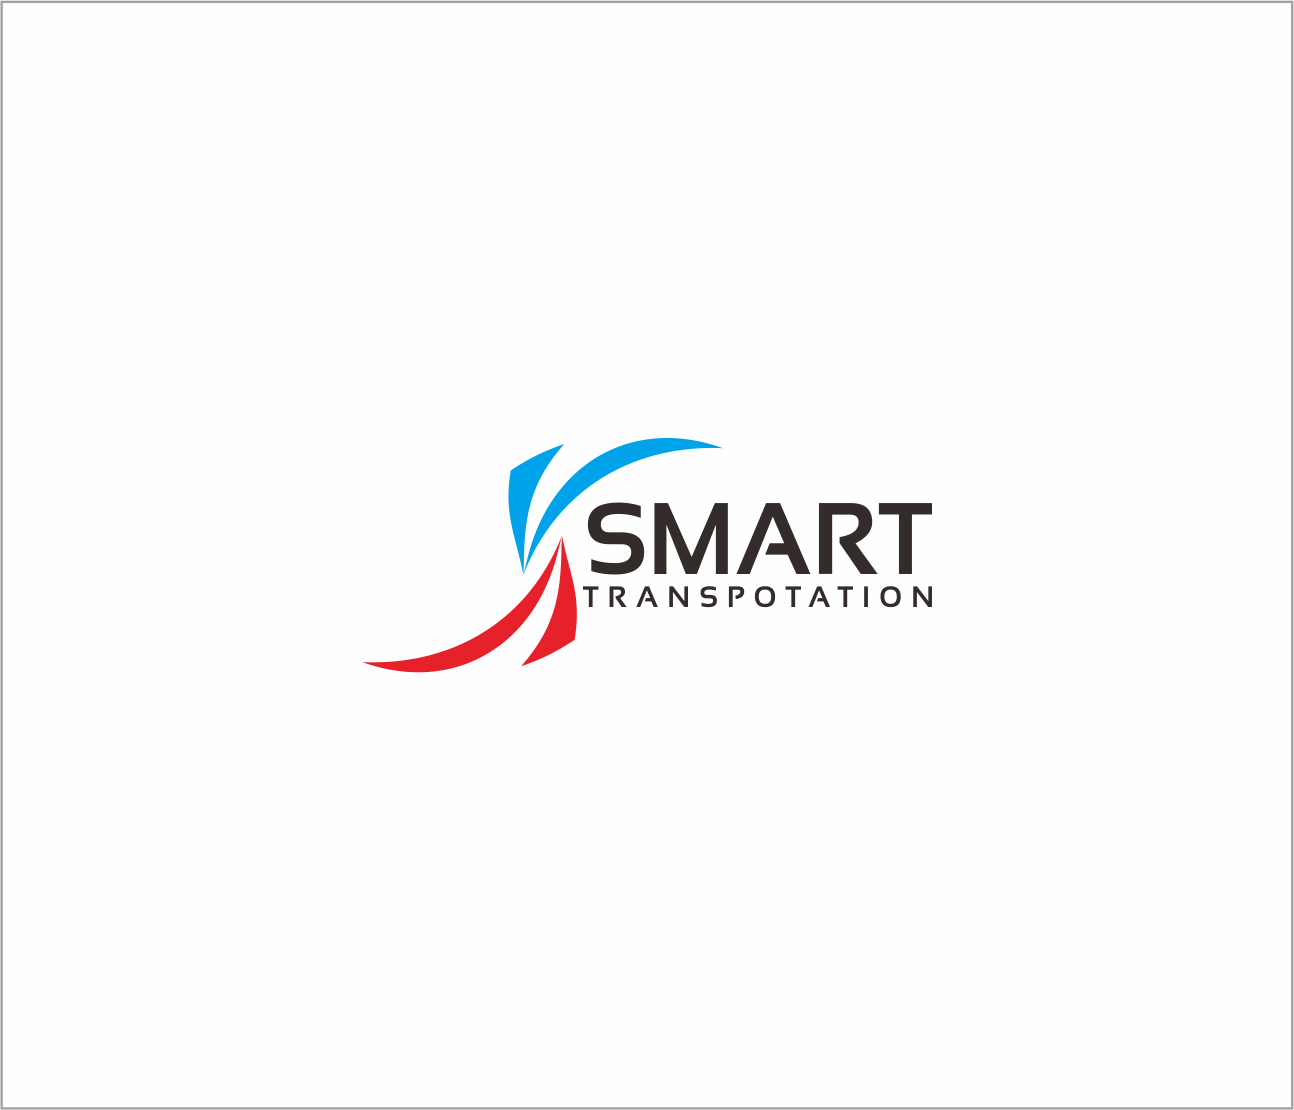 Logo Design by Armada Jamaluddin - Entry No. 64 in the Logo Design Contest Imaginative Logo Design for Smart Transportation.